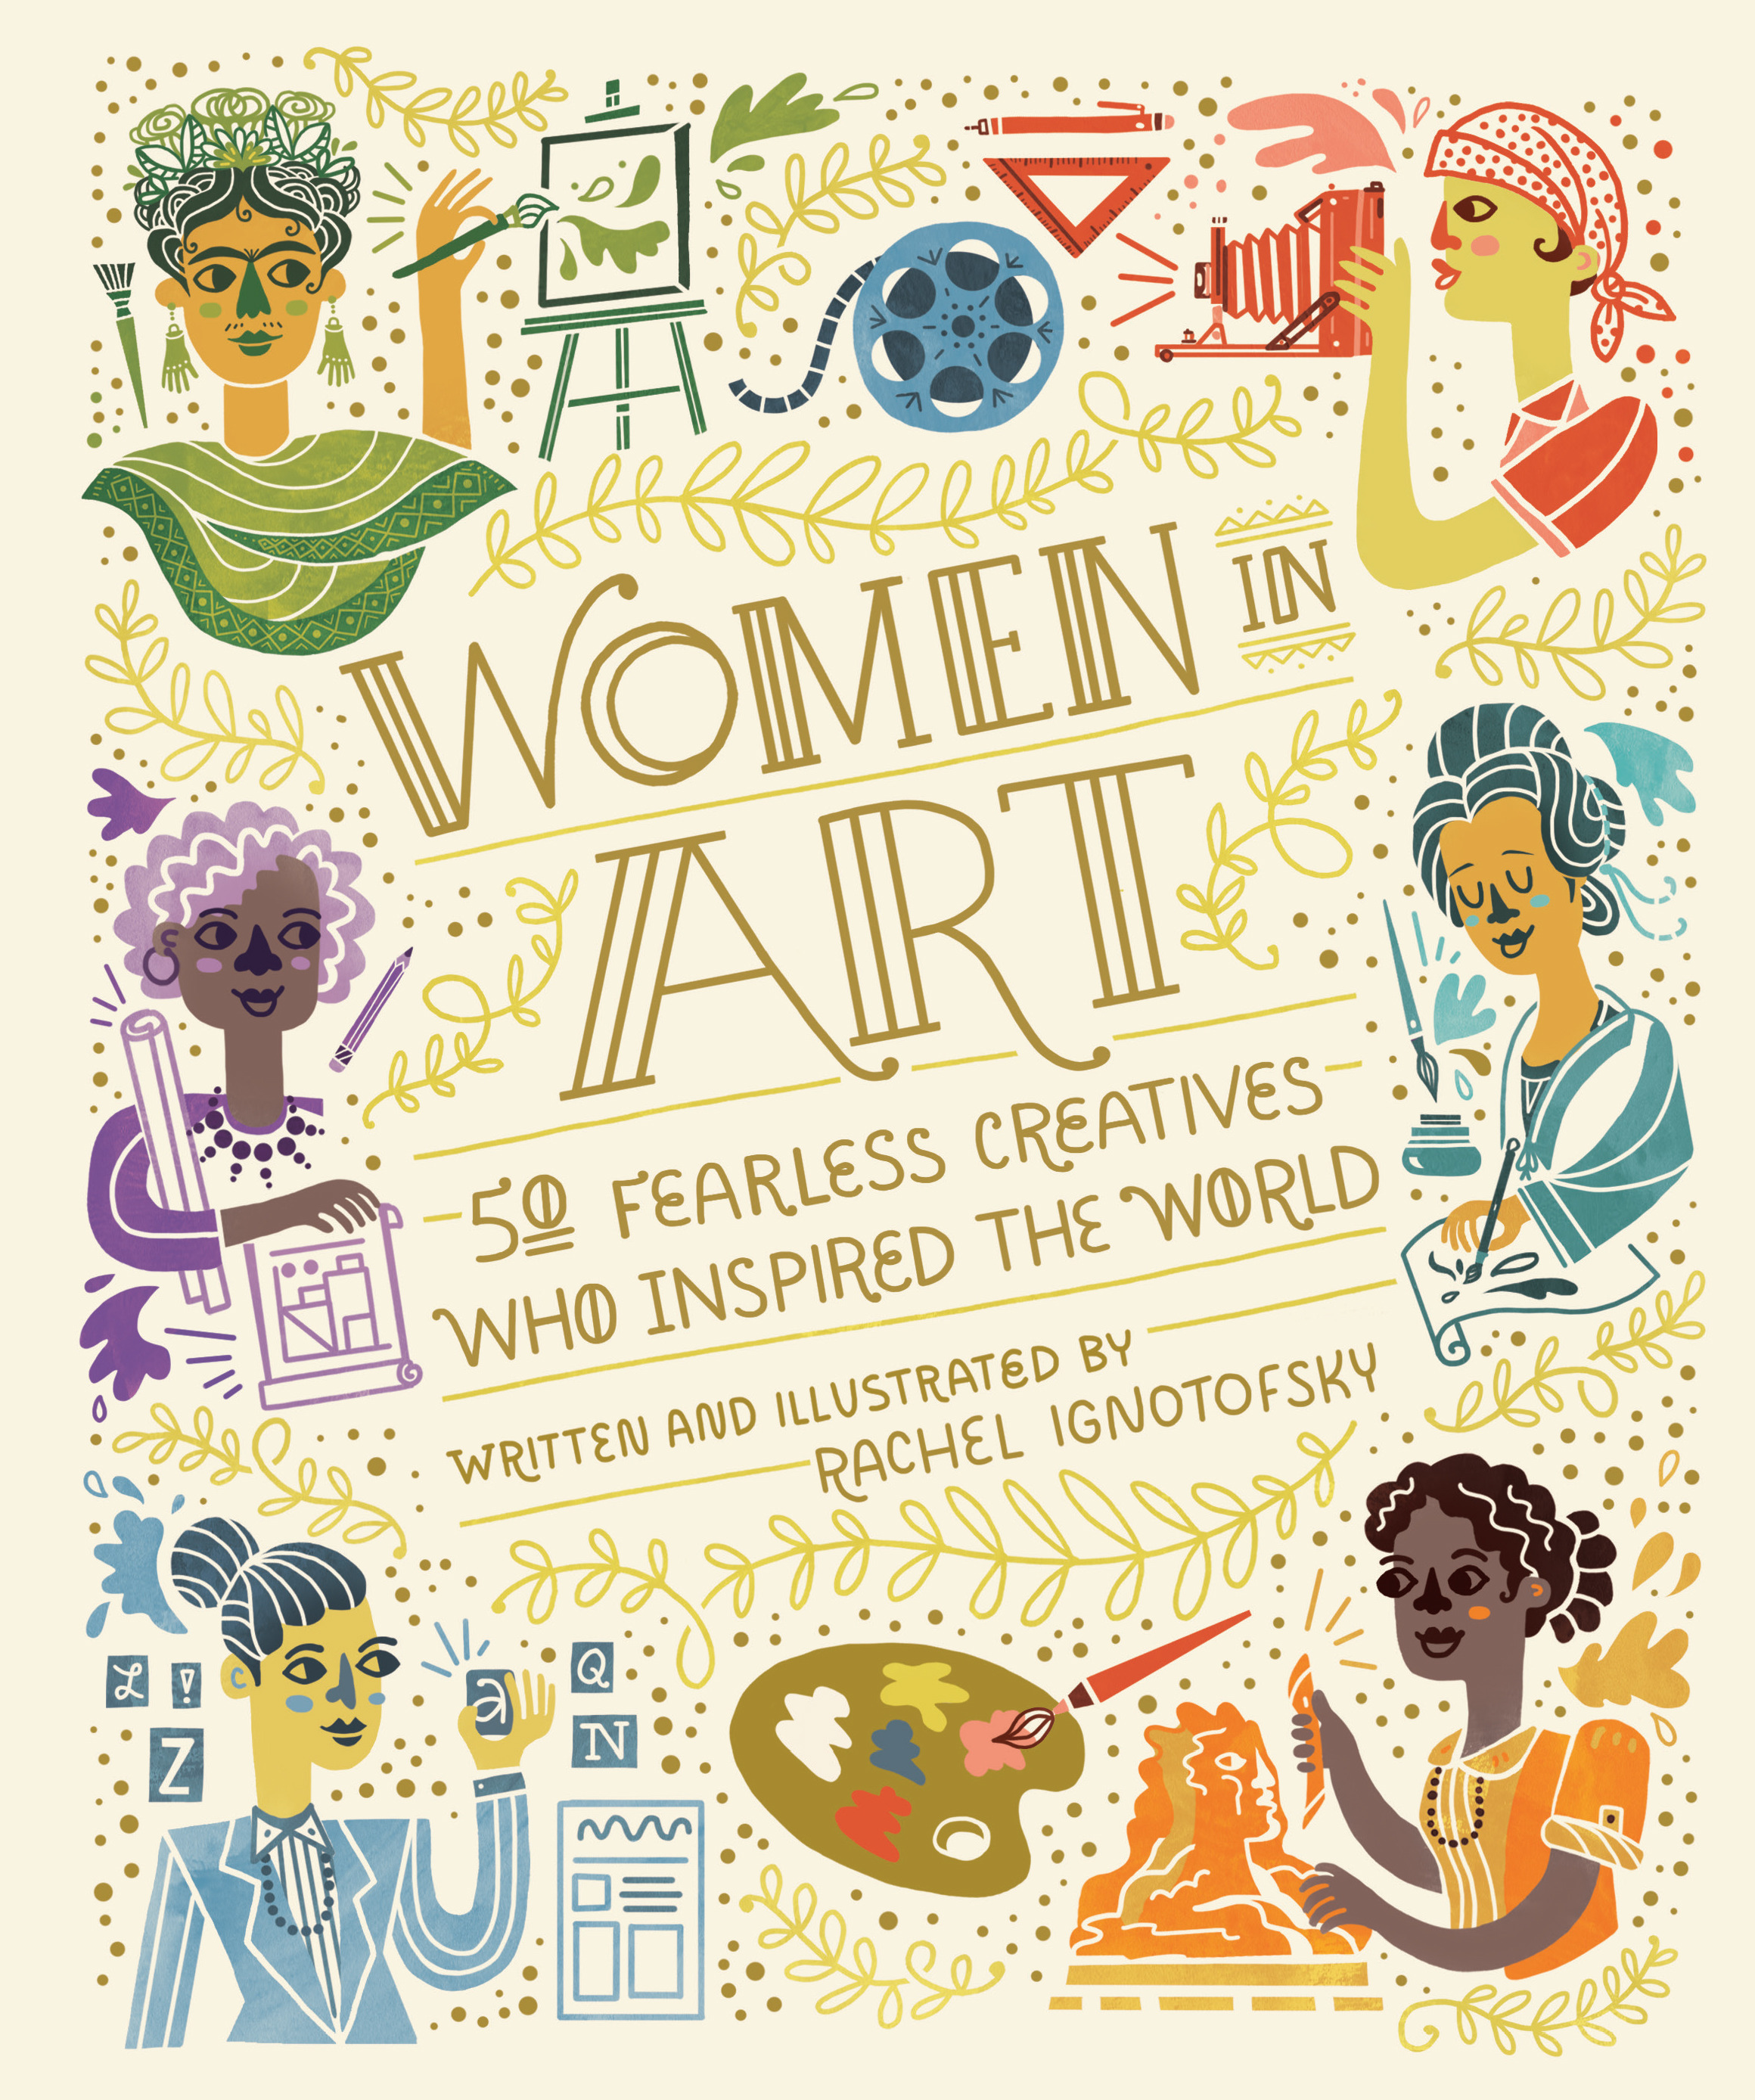 Book Launch: Women In Art by Rachel Ignotofsky